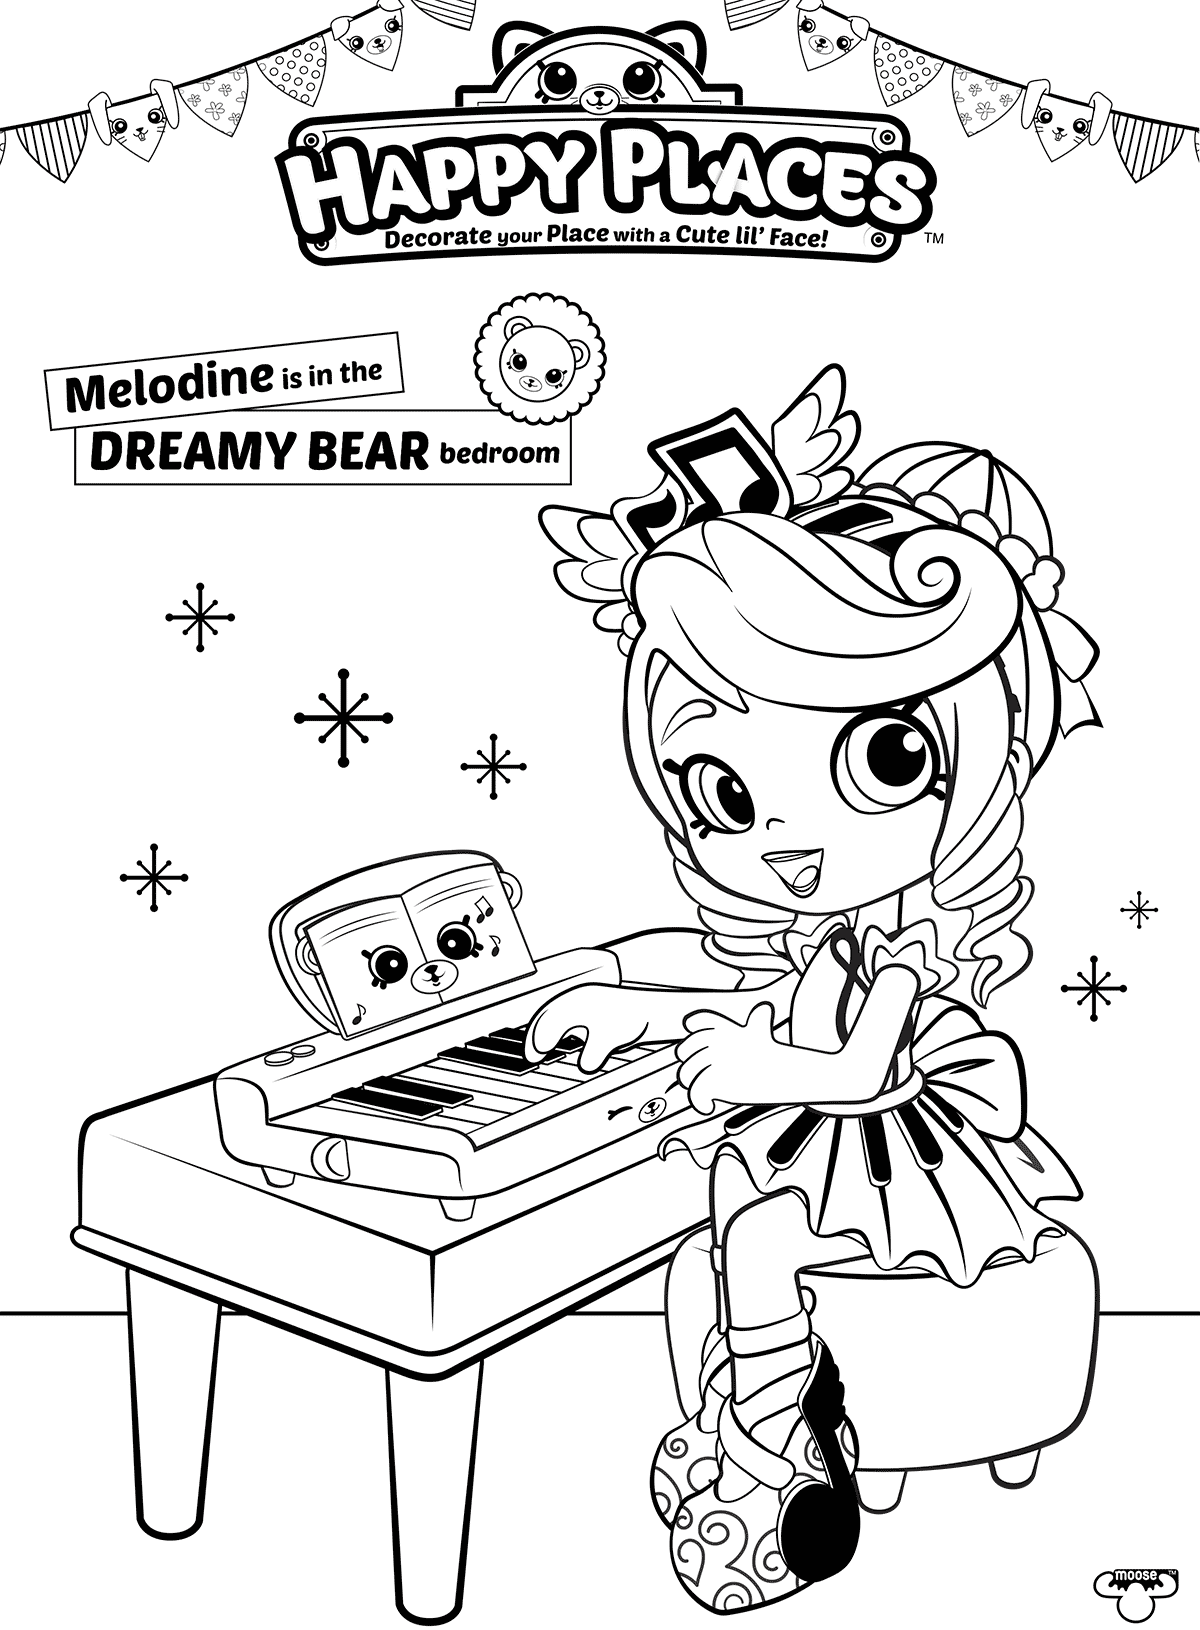 Melodine shoppies coloring pages